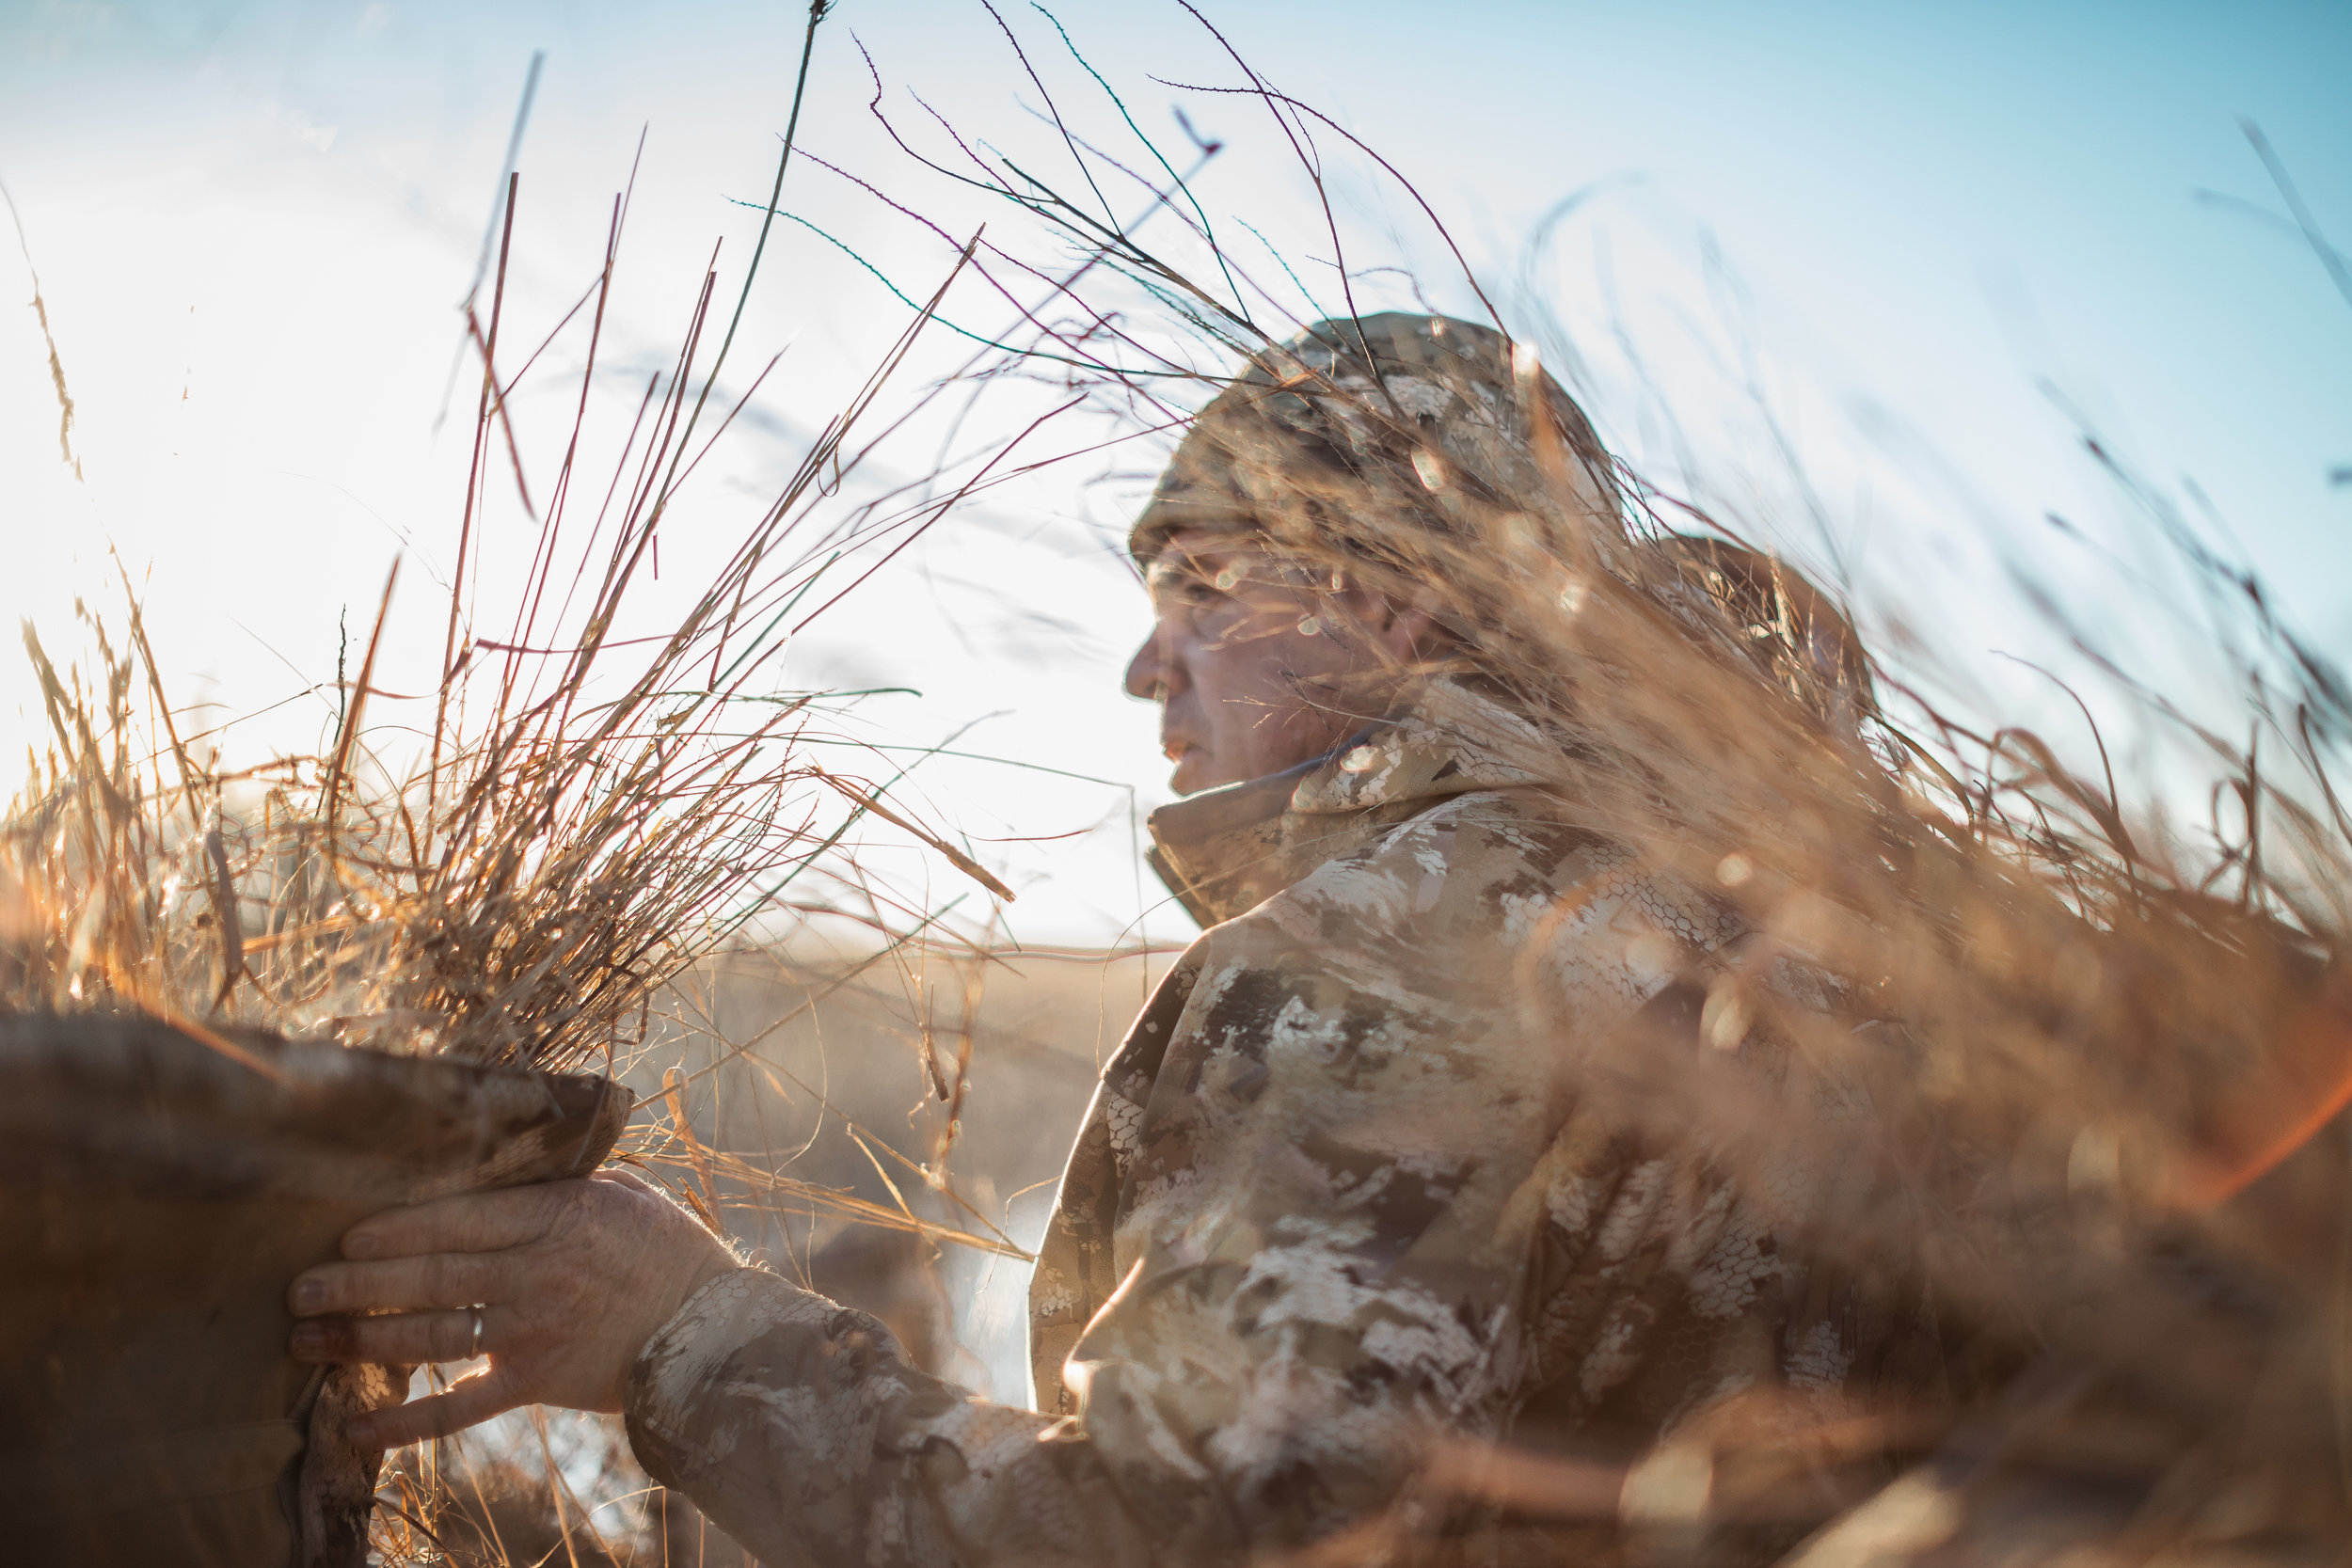 Discussions firmly rooted in our waterfowl culture… - branching out into unlimited new topics and experiences